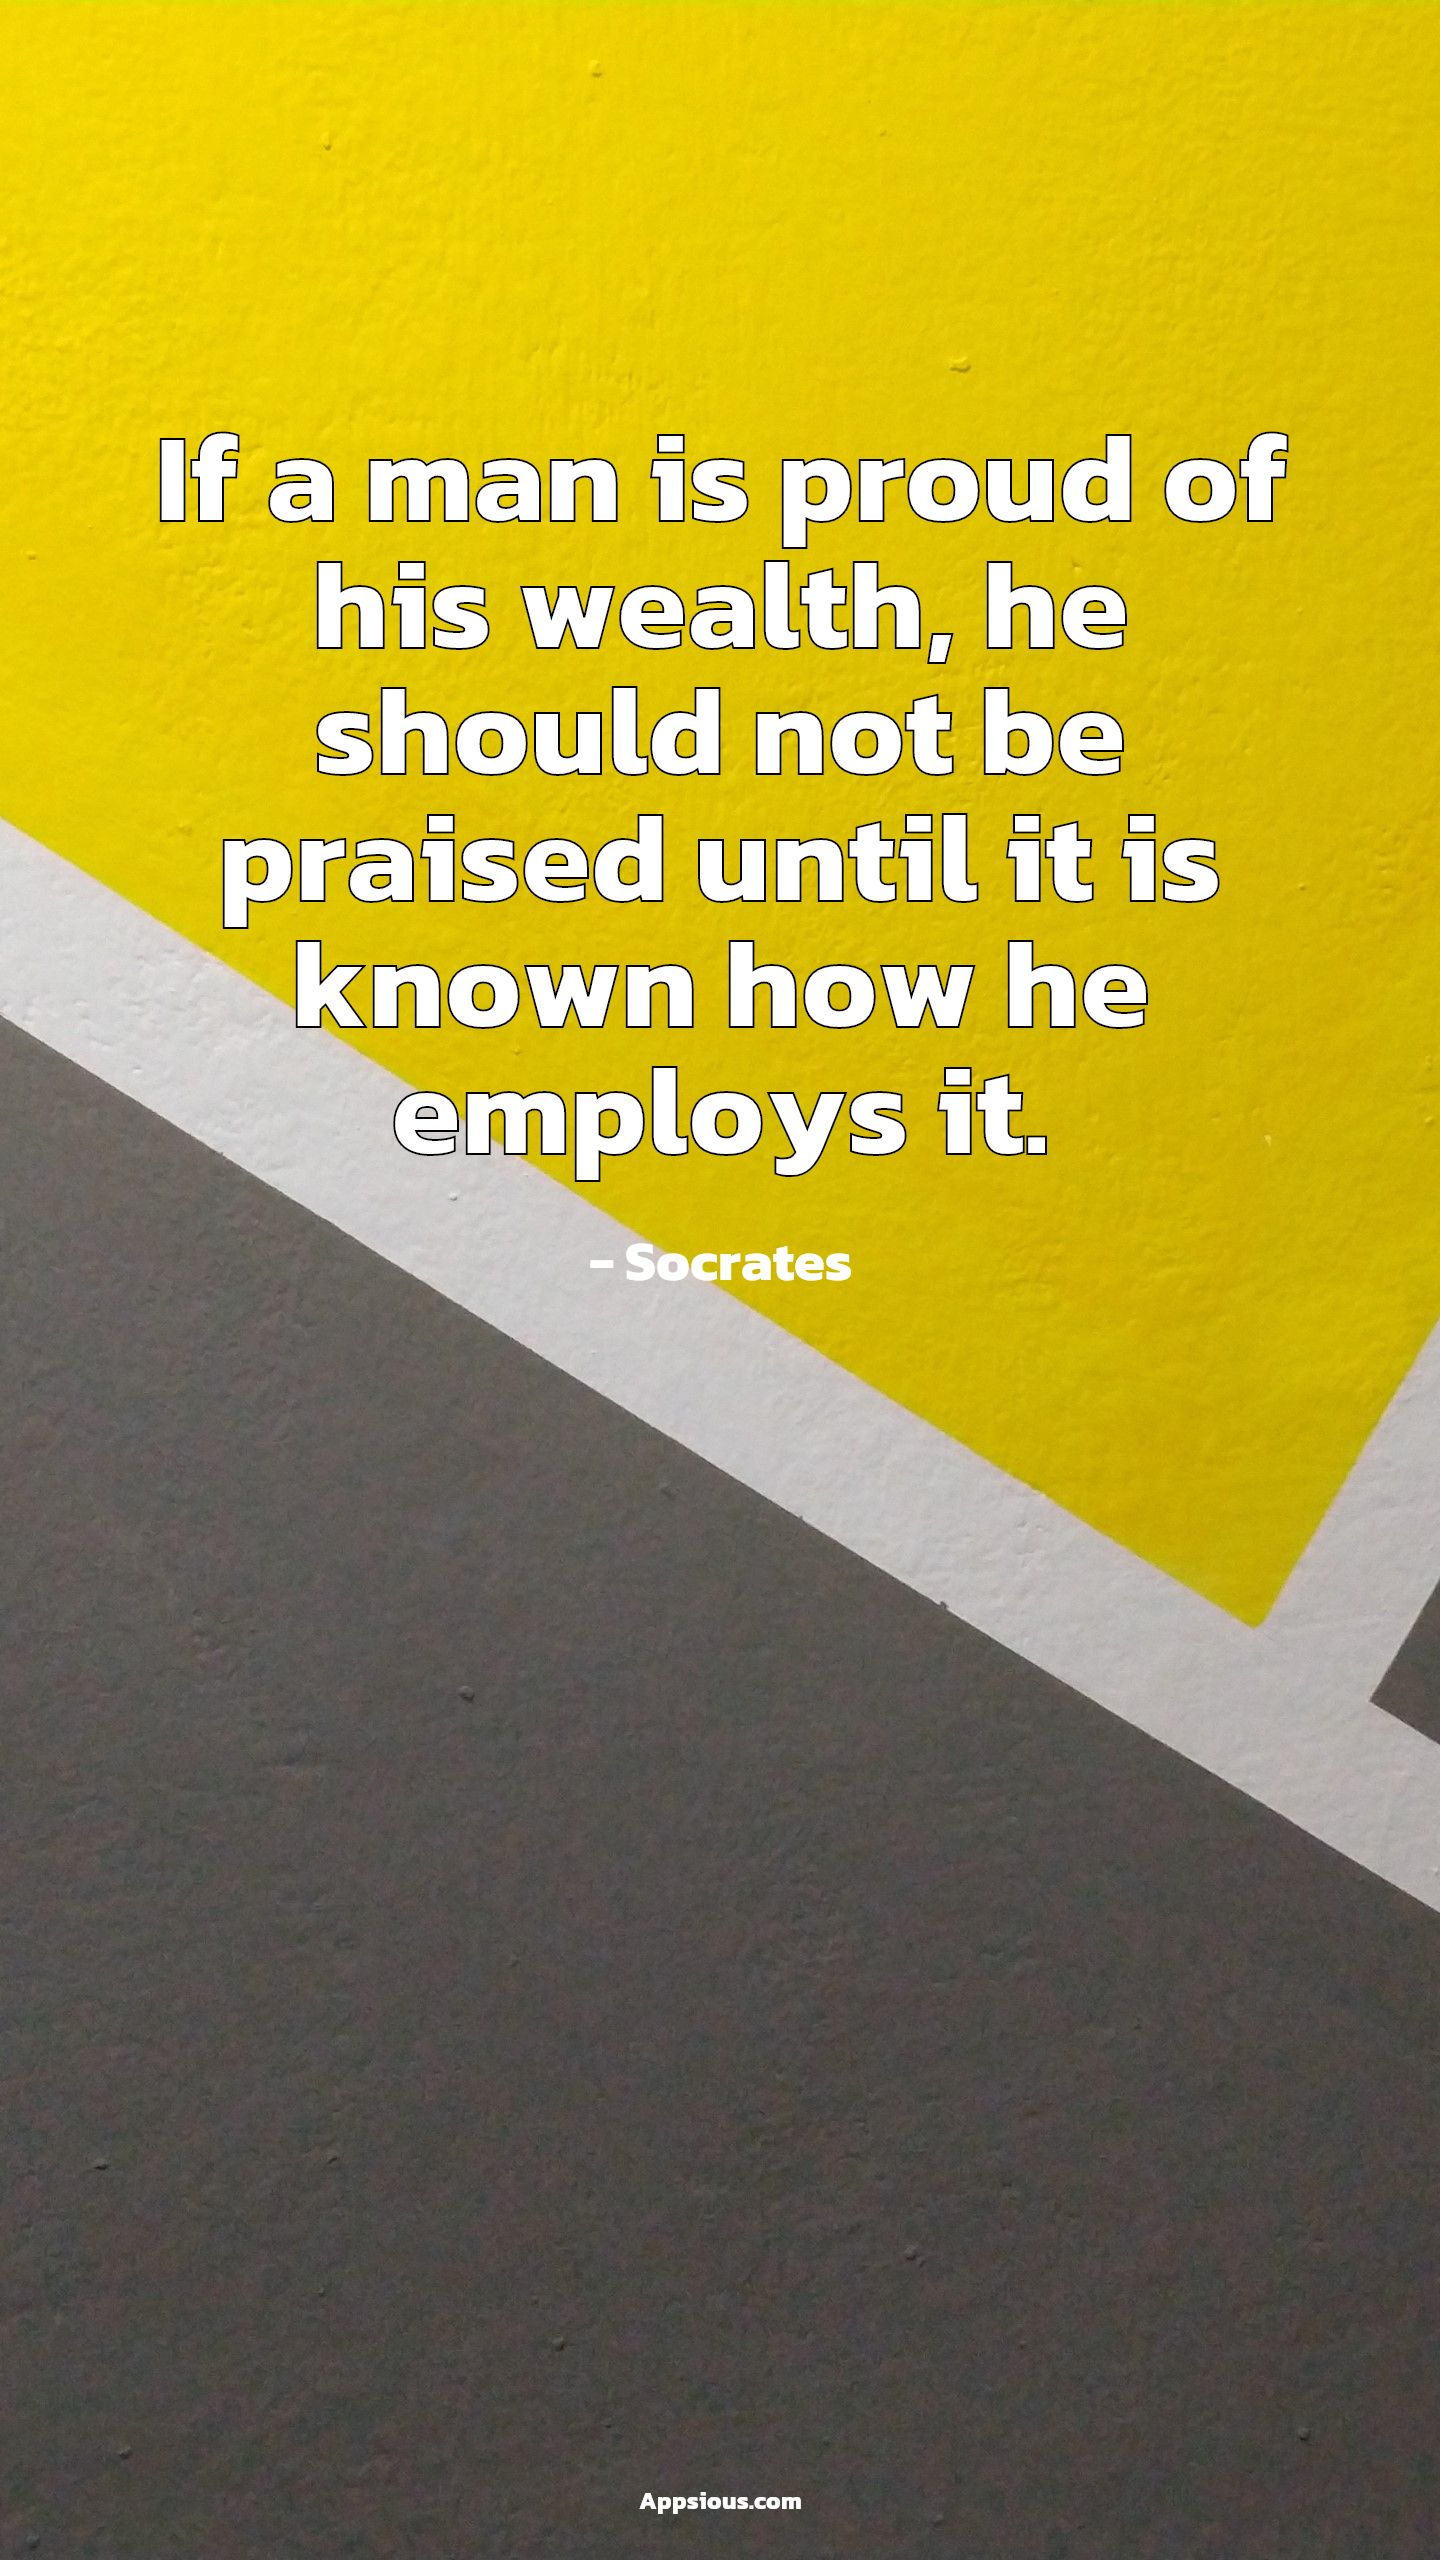 If a man is proud of his wealth, he should not be praised until it is known how he employs it.